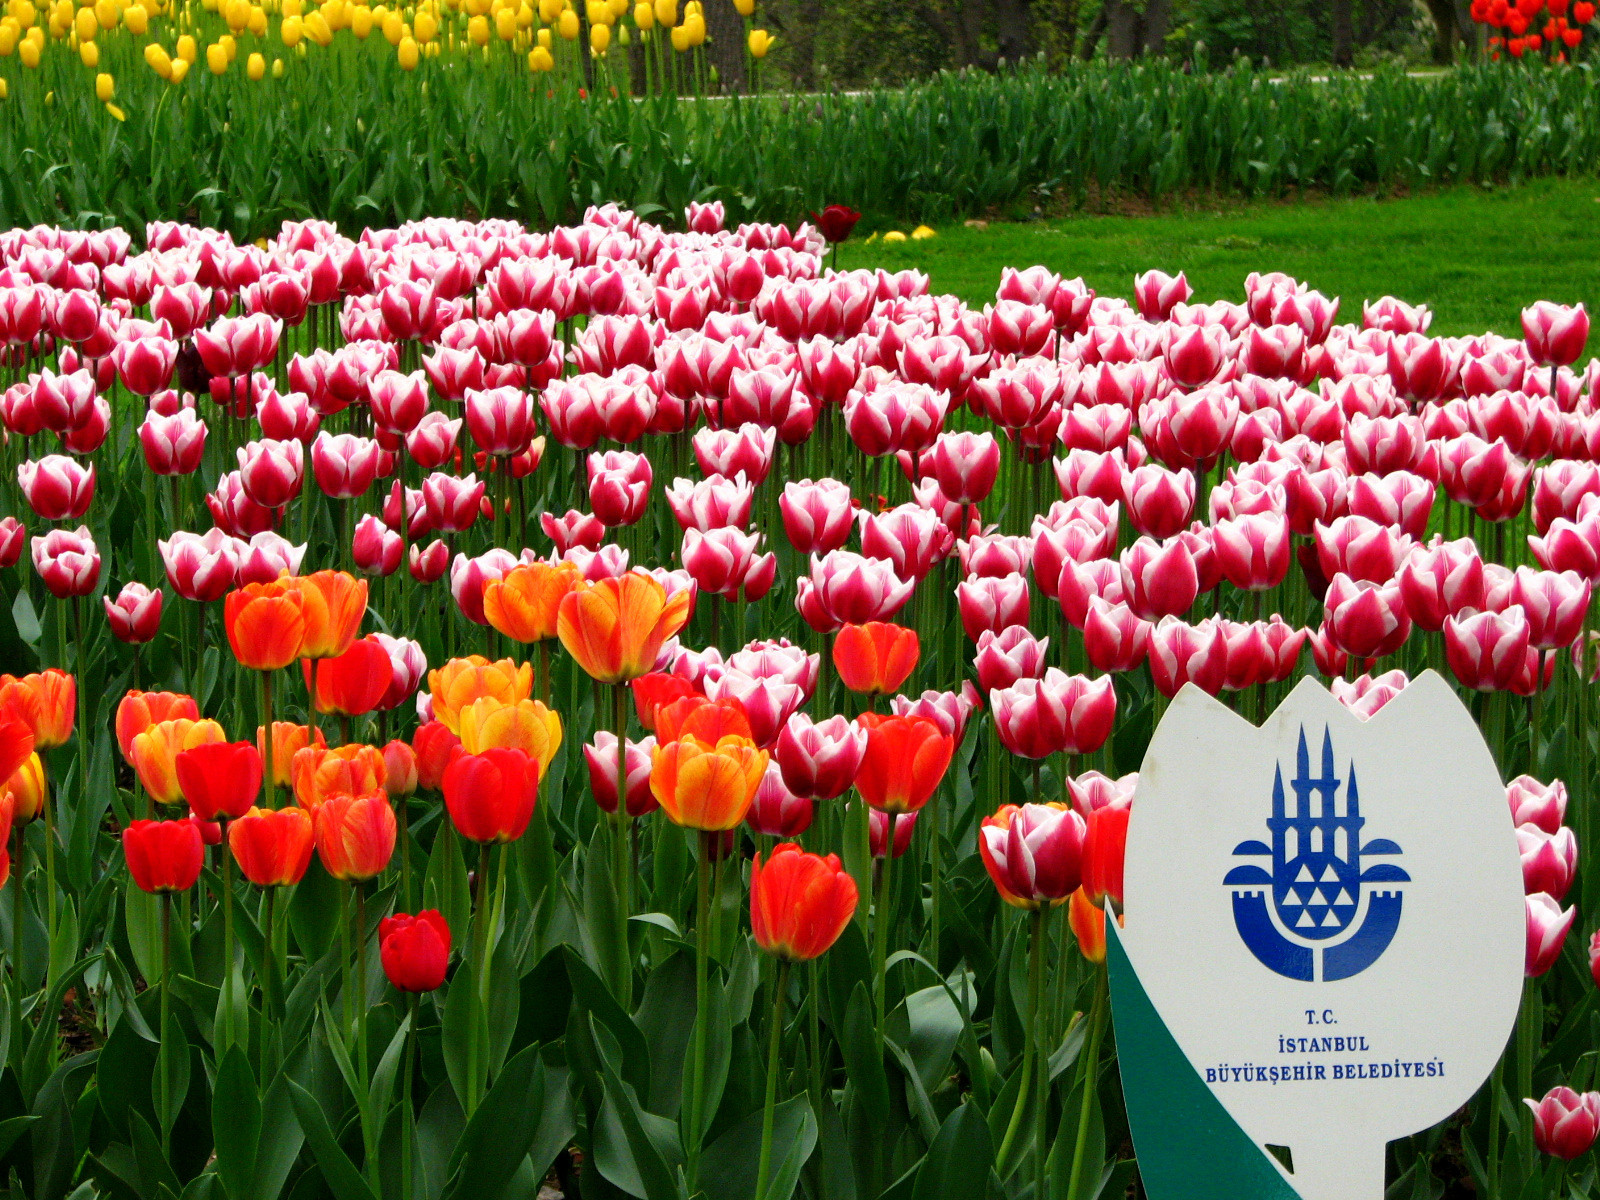 Istanbul Weather In Spring & Best Time To Visit Istanbul Tulip Festival